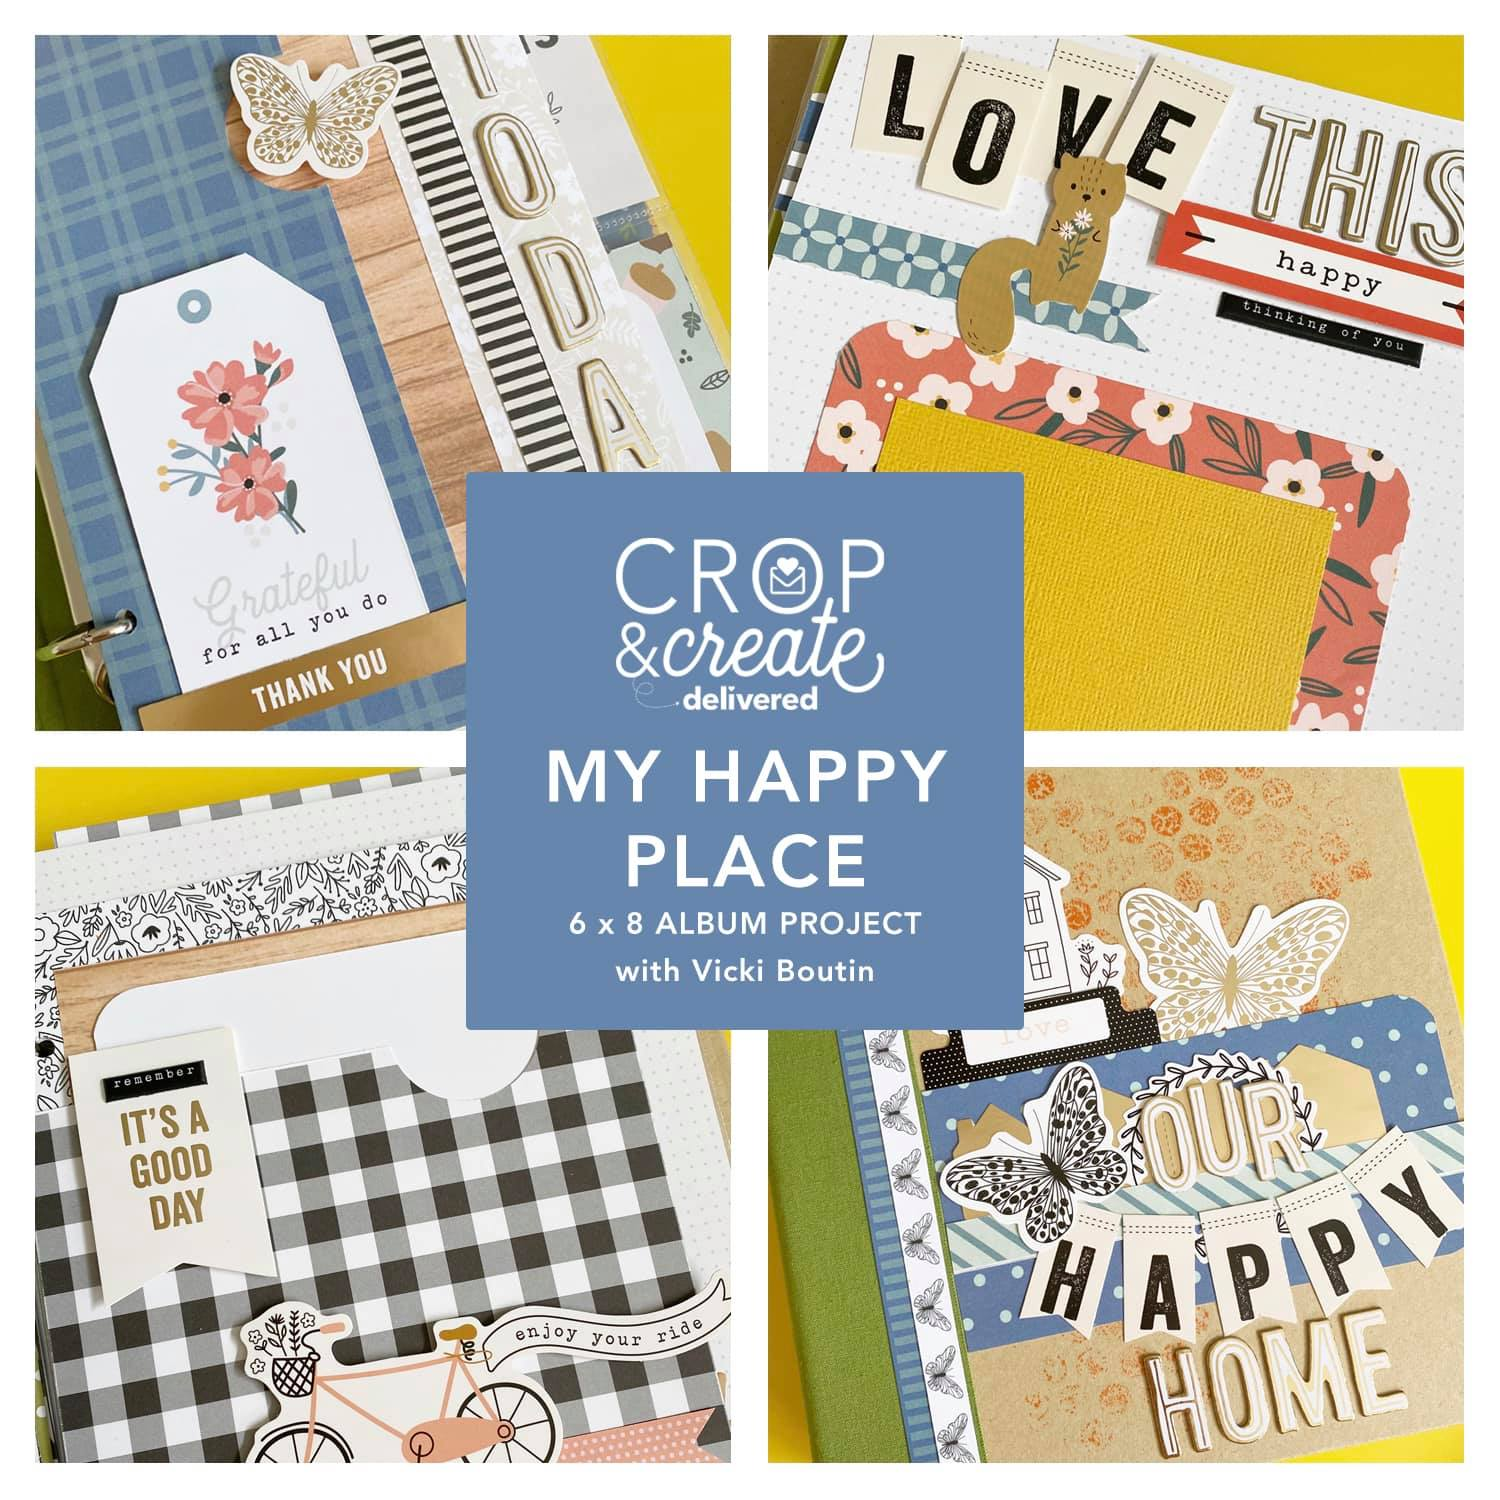 My Happy Place 6x8 Interactive Album Workshop with Vicki Boutin